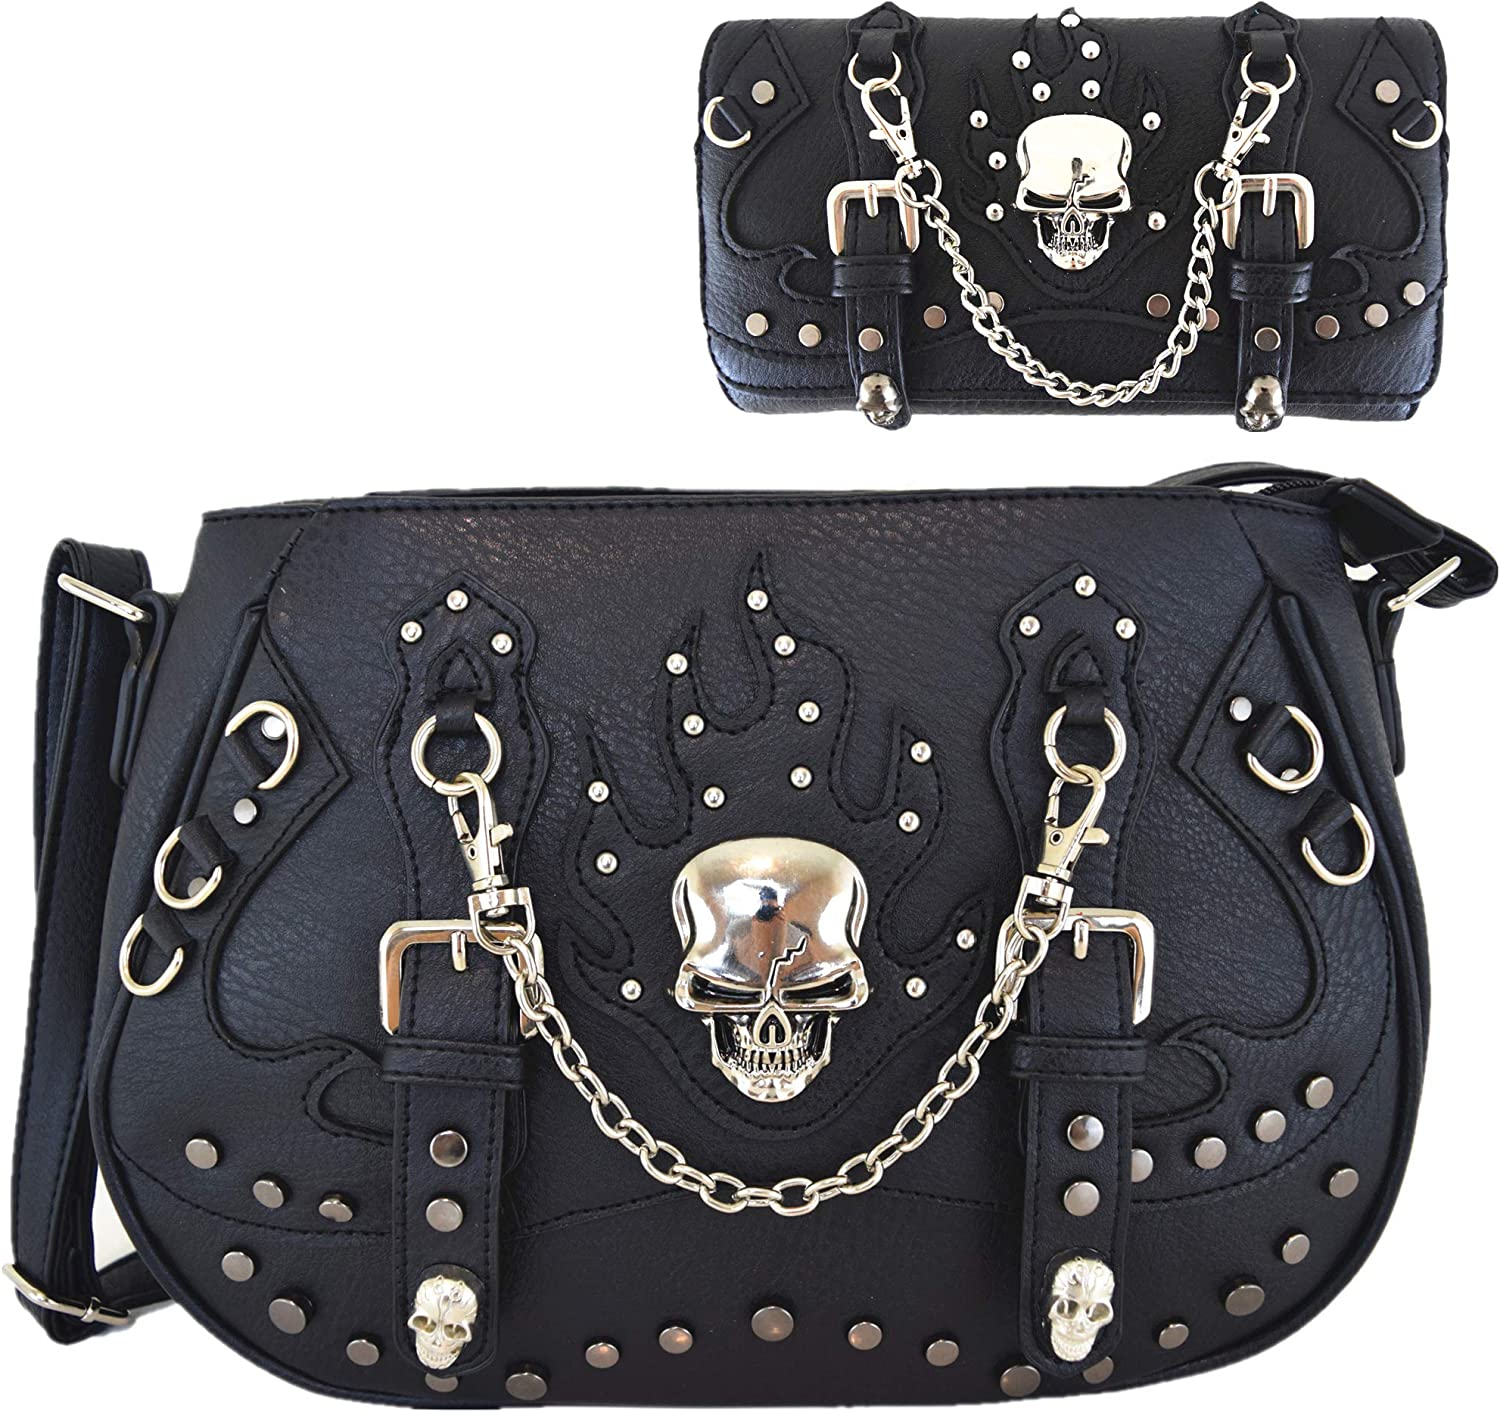 Punk Gothic Skull Chain Crossbody Handbag Concealed Carry Purse Women Single Shoulder Bag/Wallet Black